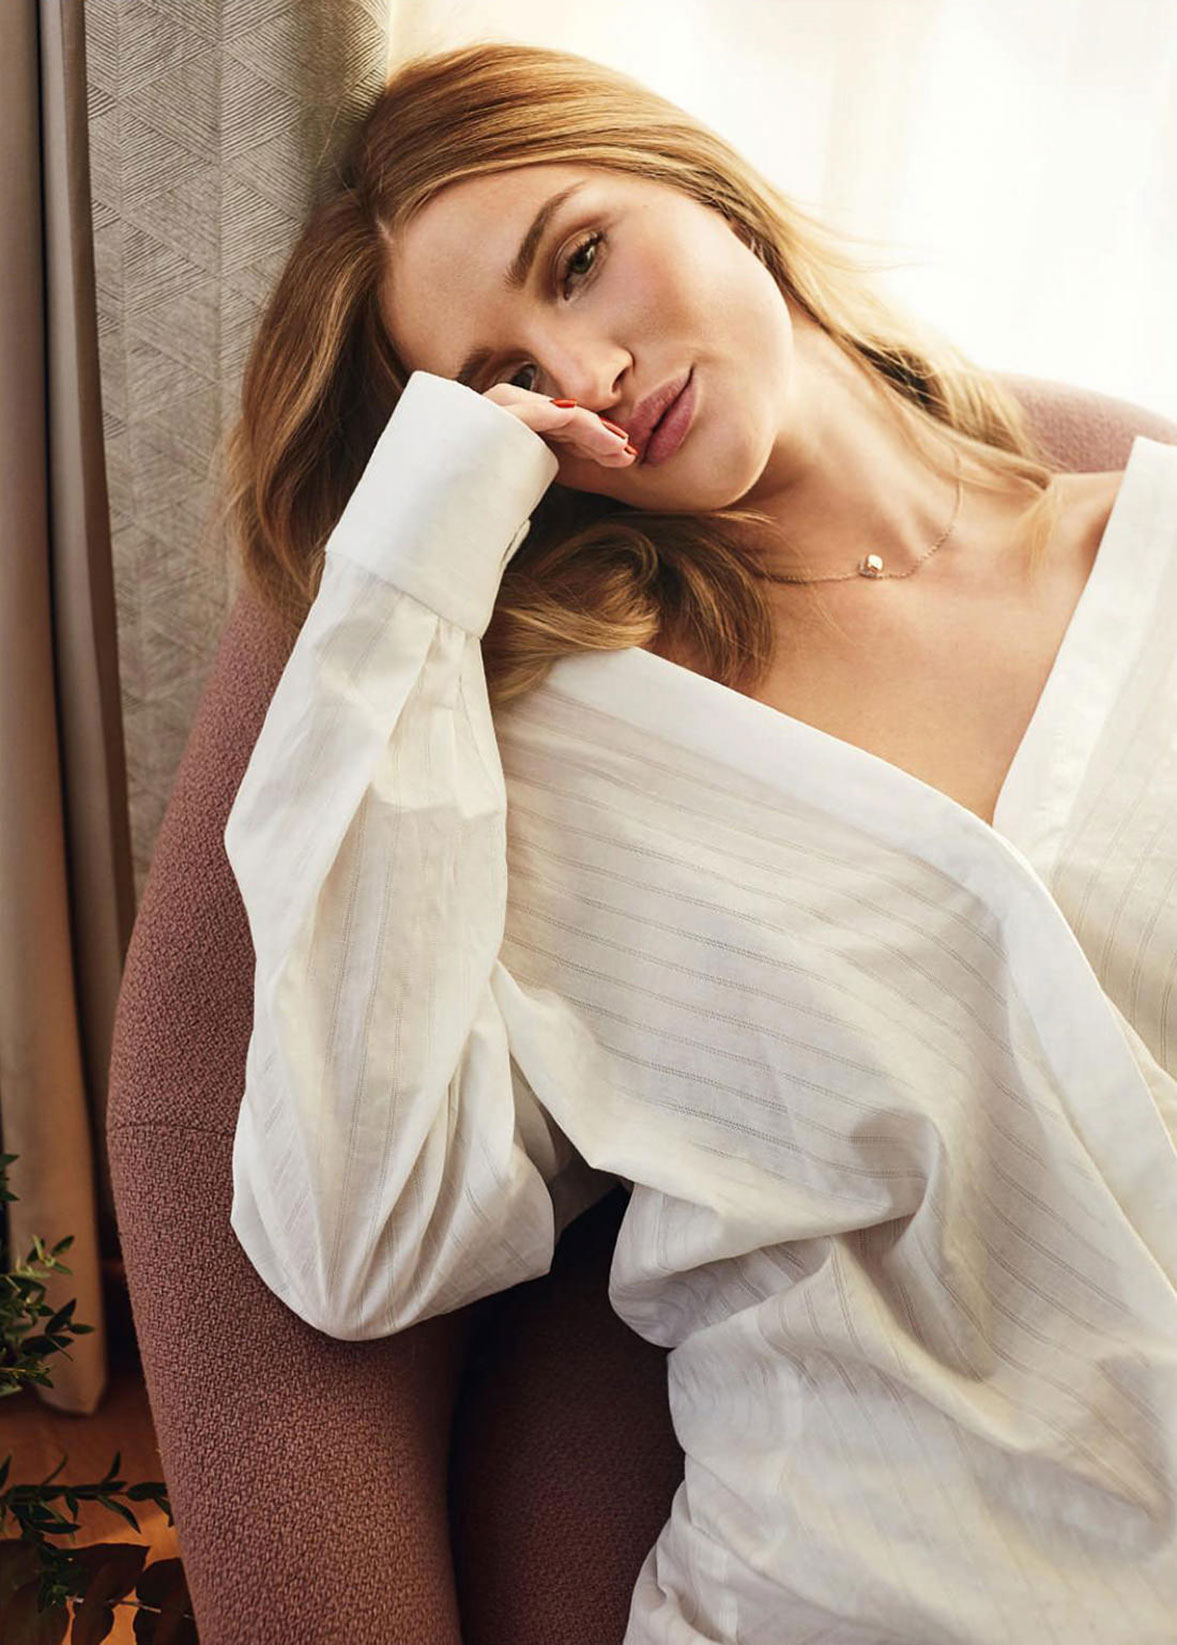 Soft Power / Rosie Huntington-Whiteley by Agata Pospieszynska - Harpers Bazaar UK march 2018